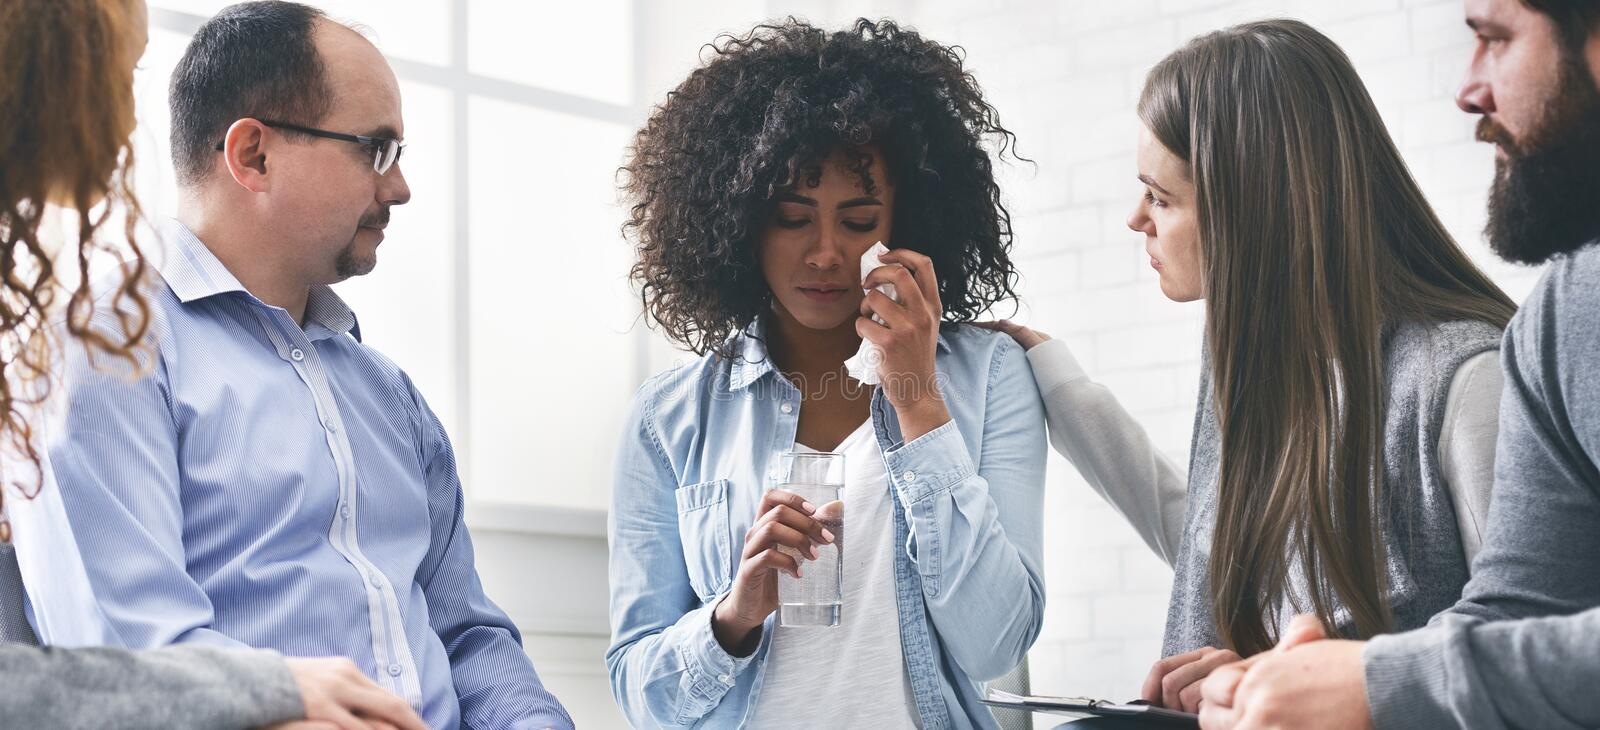 Therapy Session Group Members Comforting Crying Woman, Giving Glass Of Water stock photo